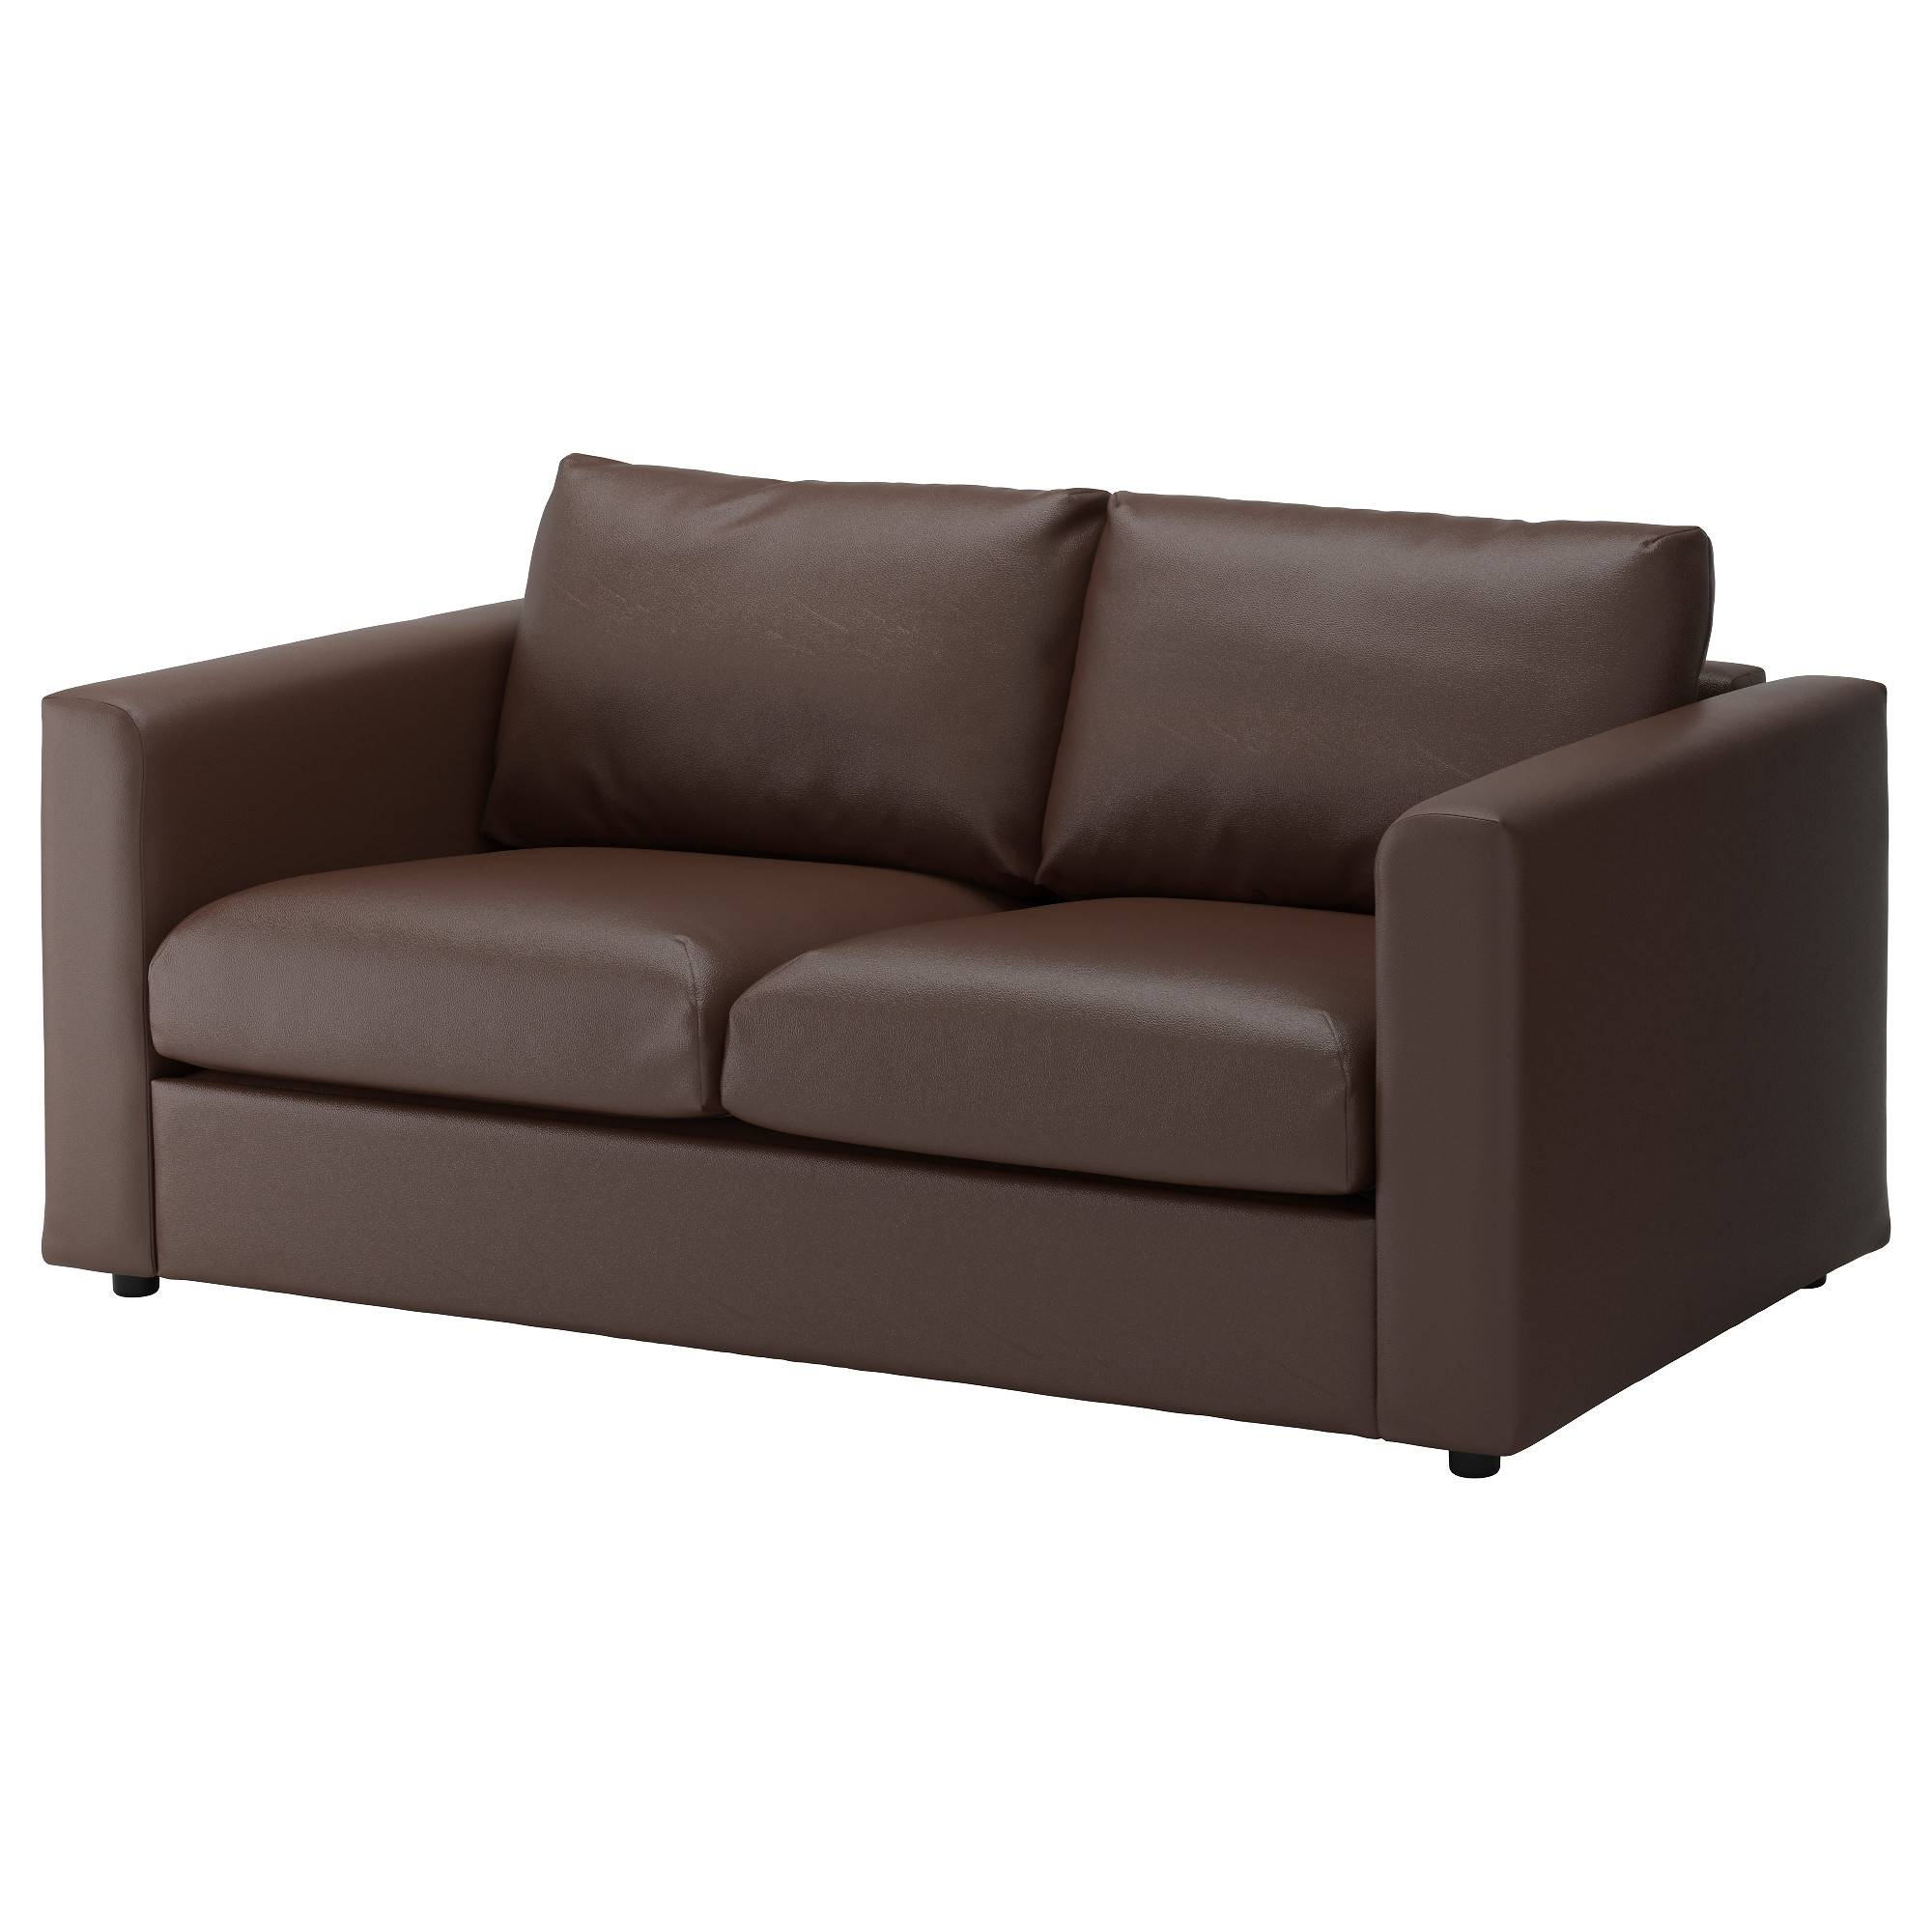 Small Sofa & 2 Seater Sofa | Ikea regarding Small 2 Seater Sofas (Image 18 of 30)